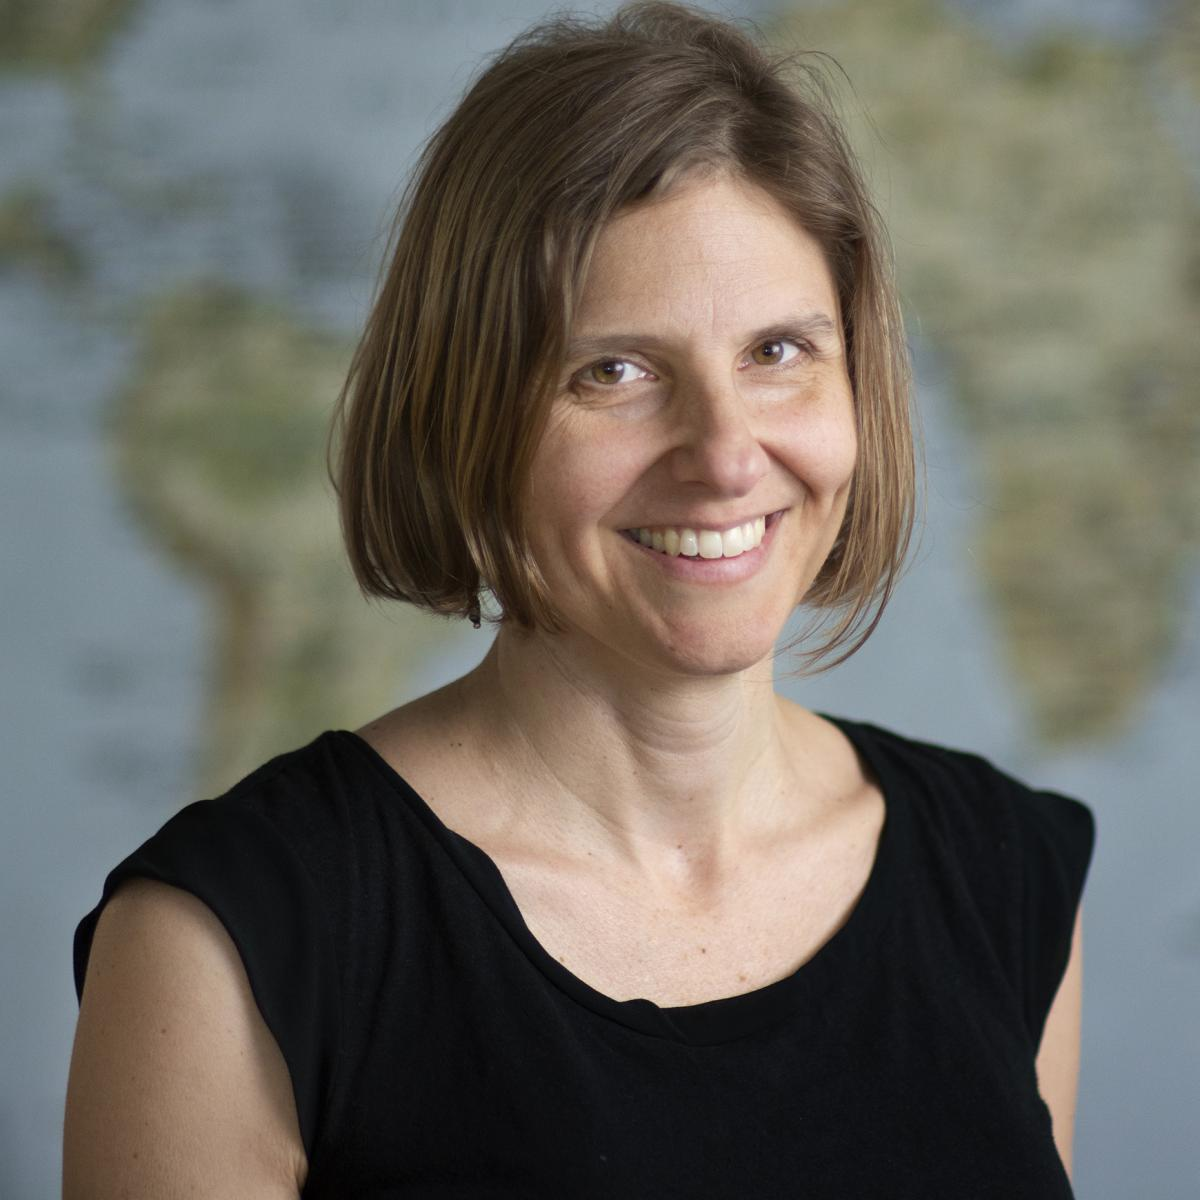 Profile photo of Anya Nartker in front of a world map